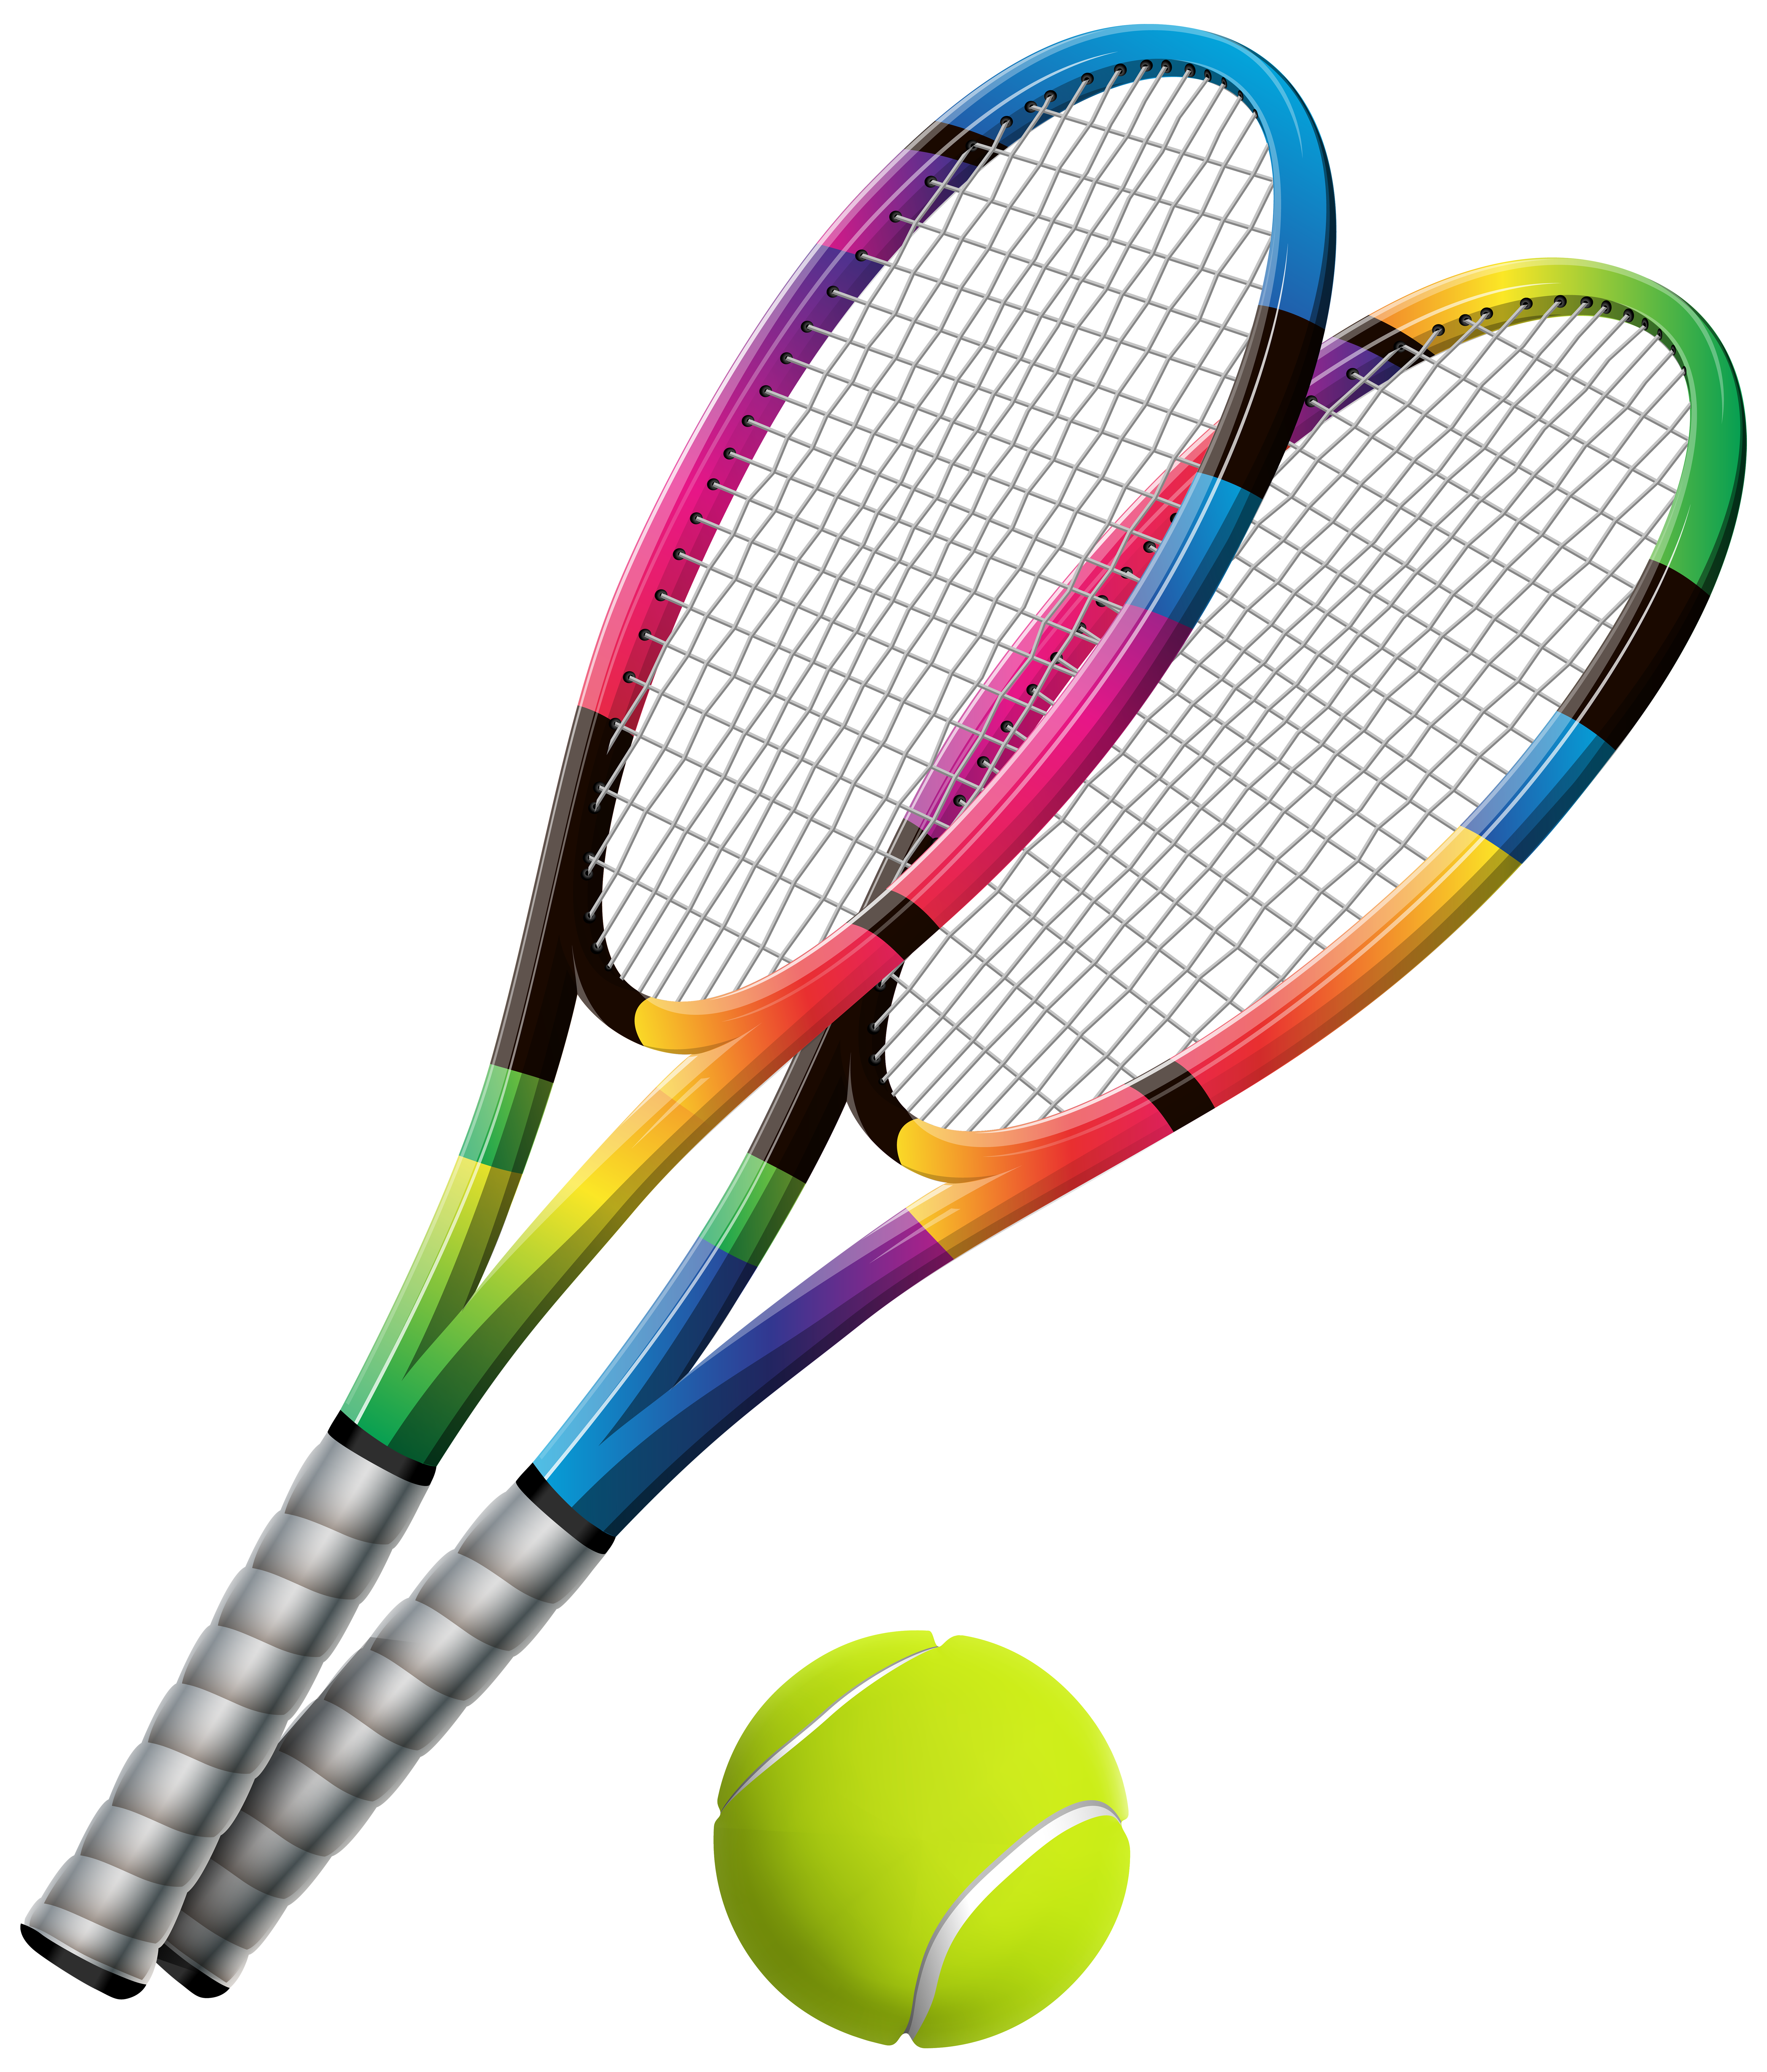 Racket clipart red tennis. At getdrawings com free